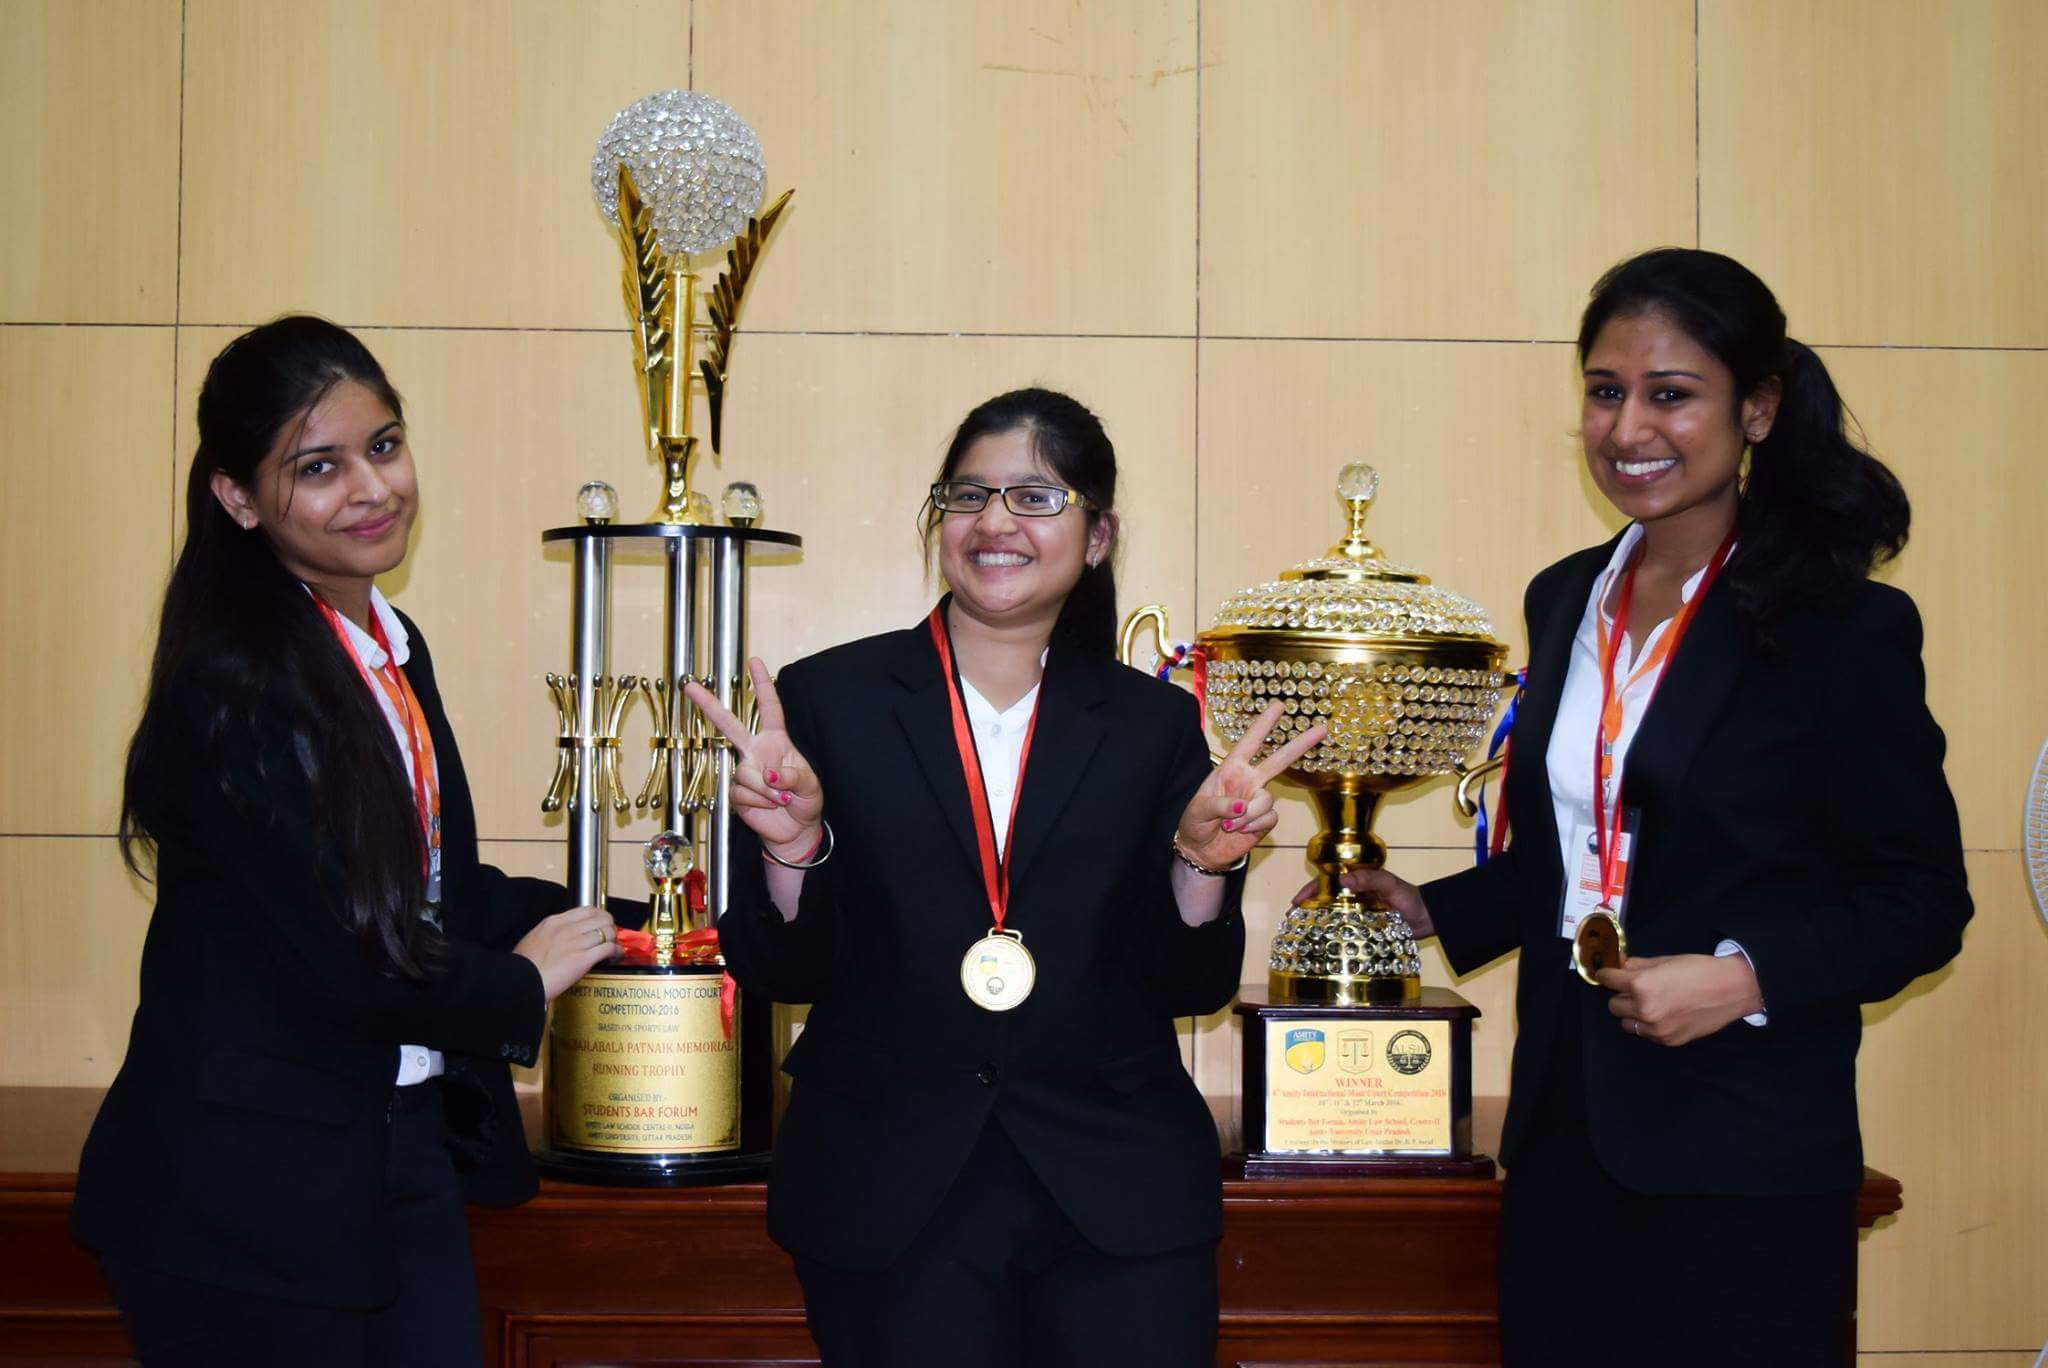 Interview: <b>Winning Team [RGNUL Patiala]</b> of 4th Amity International Moot Court Competition 2016